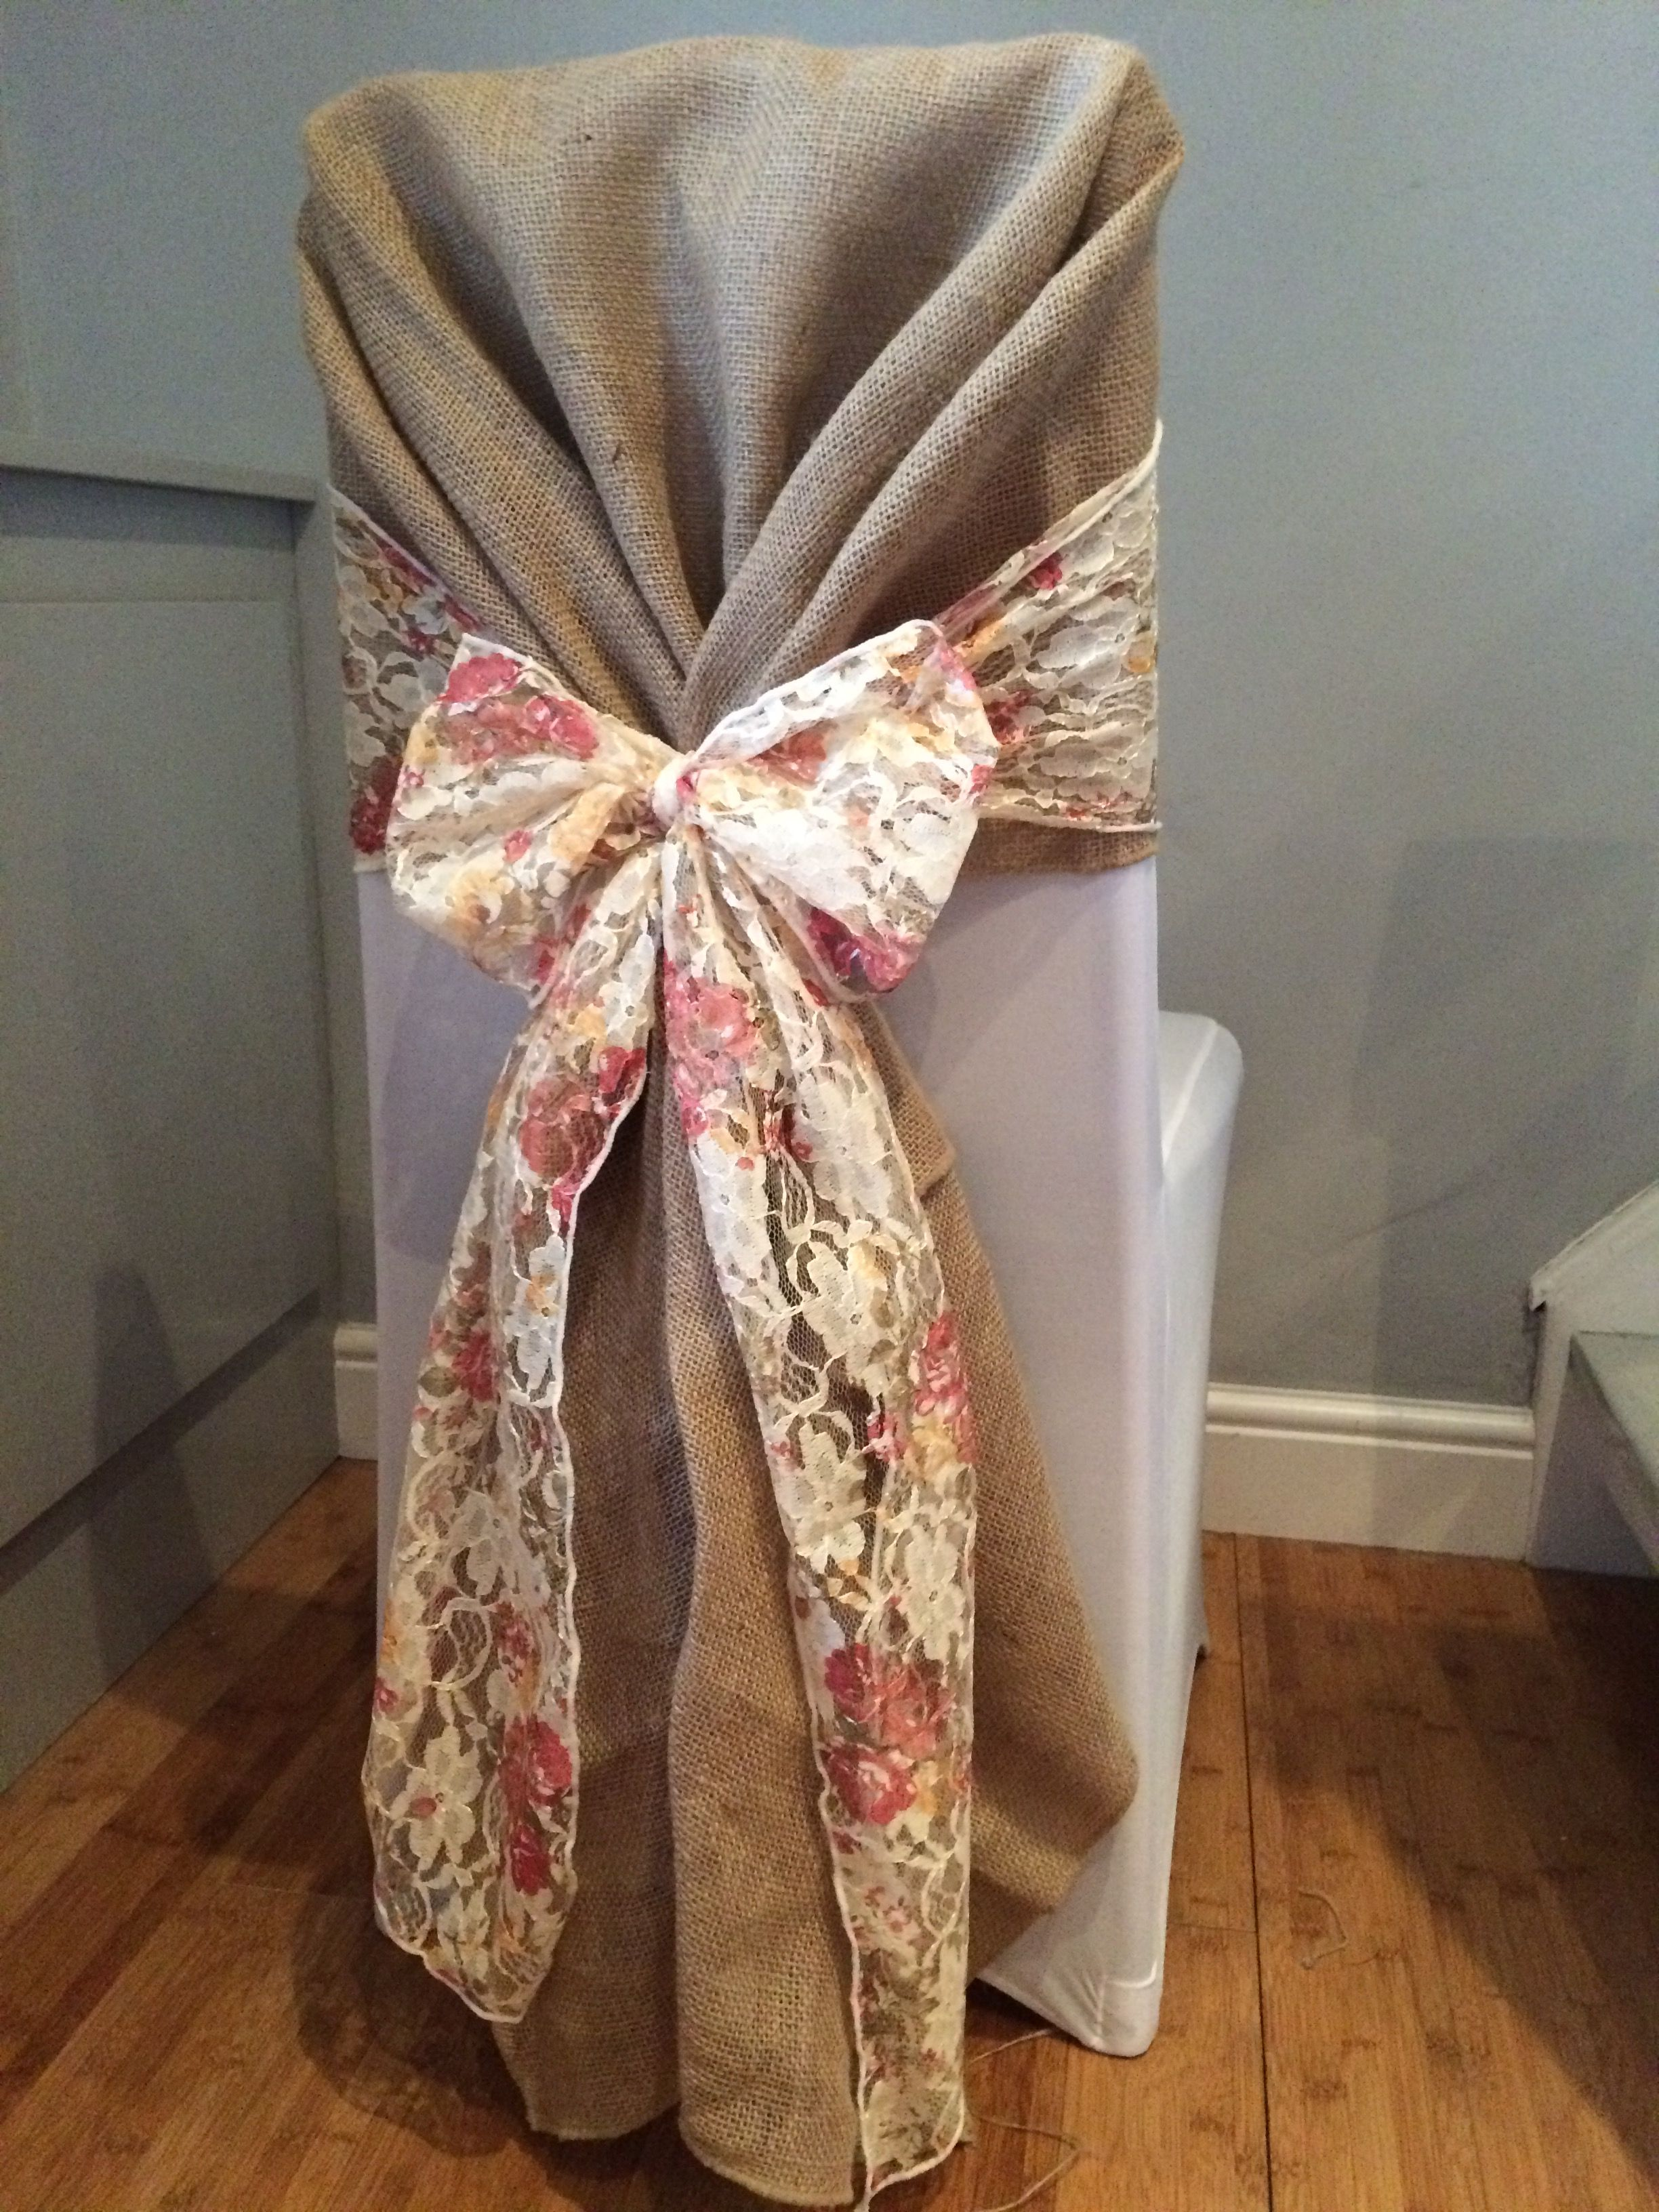 chair covers for hire south wales double seat with hessian hood and vintage floral lace in from www affinityeventdecorators com